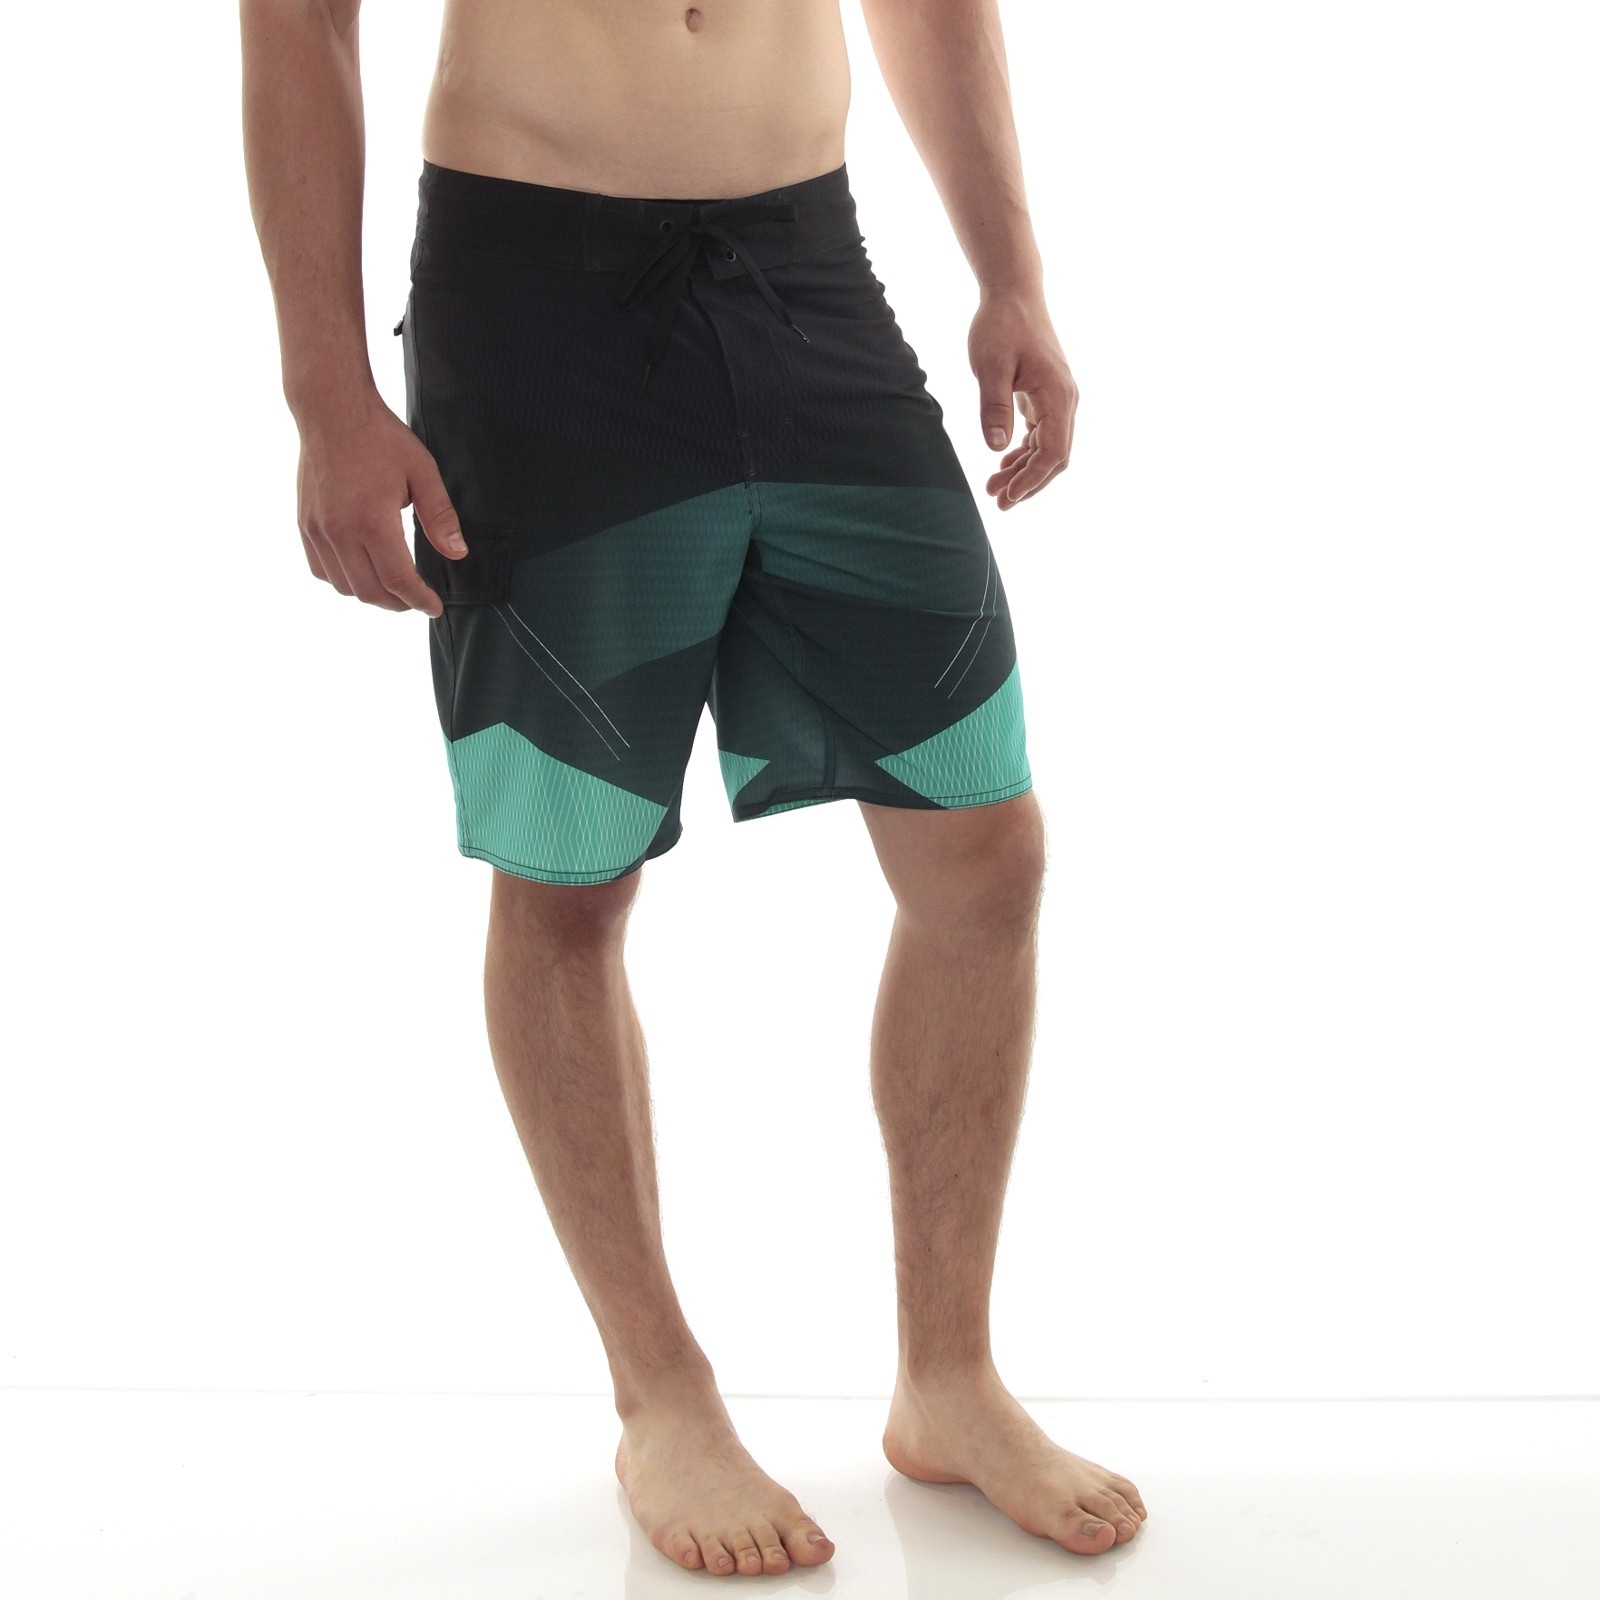 Discover men's swimwear at Debenhams. Make a statement by the pool or on holiday with our range of men's swim shorts, board shorts, swim briefs & more.